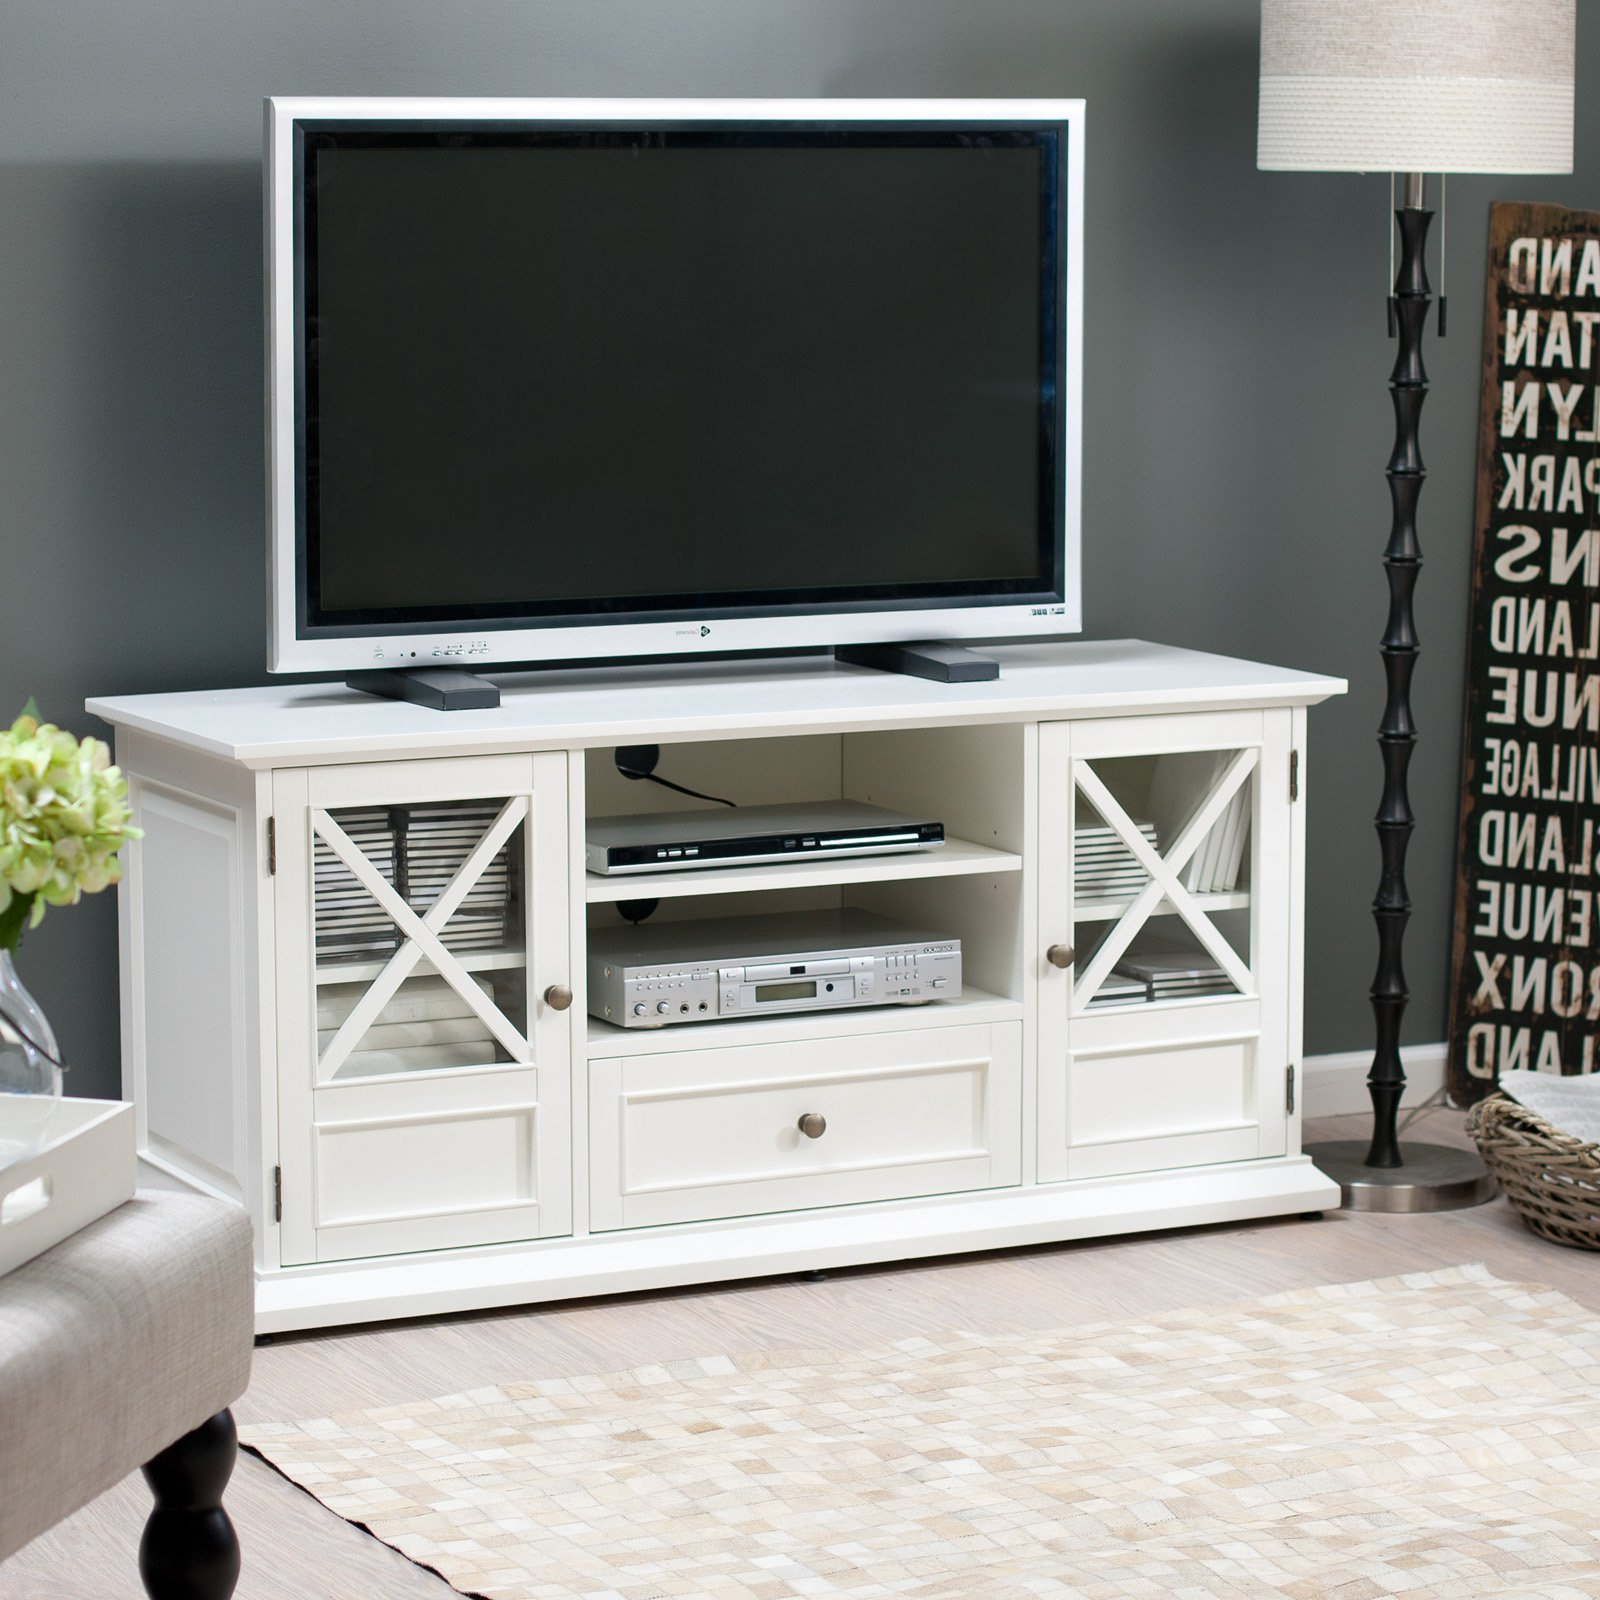 White Tv Stands For Flat Screens In Popular Belham Living Hampton Tv Stand – White – Walmart (View 17 of 20)